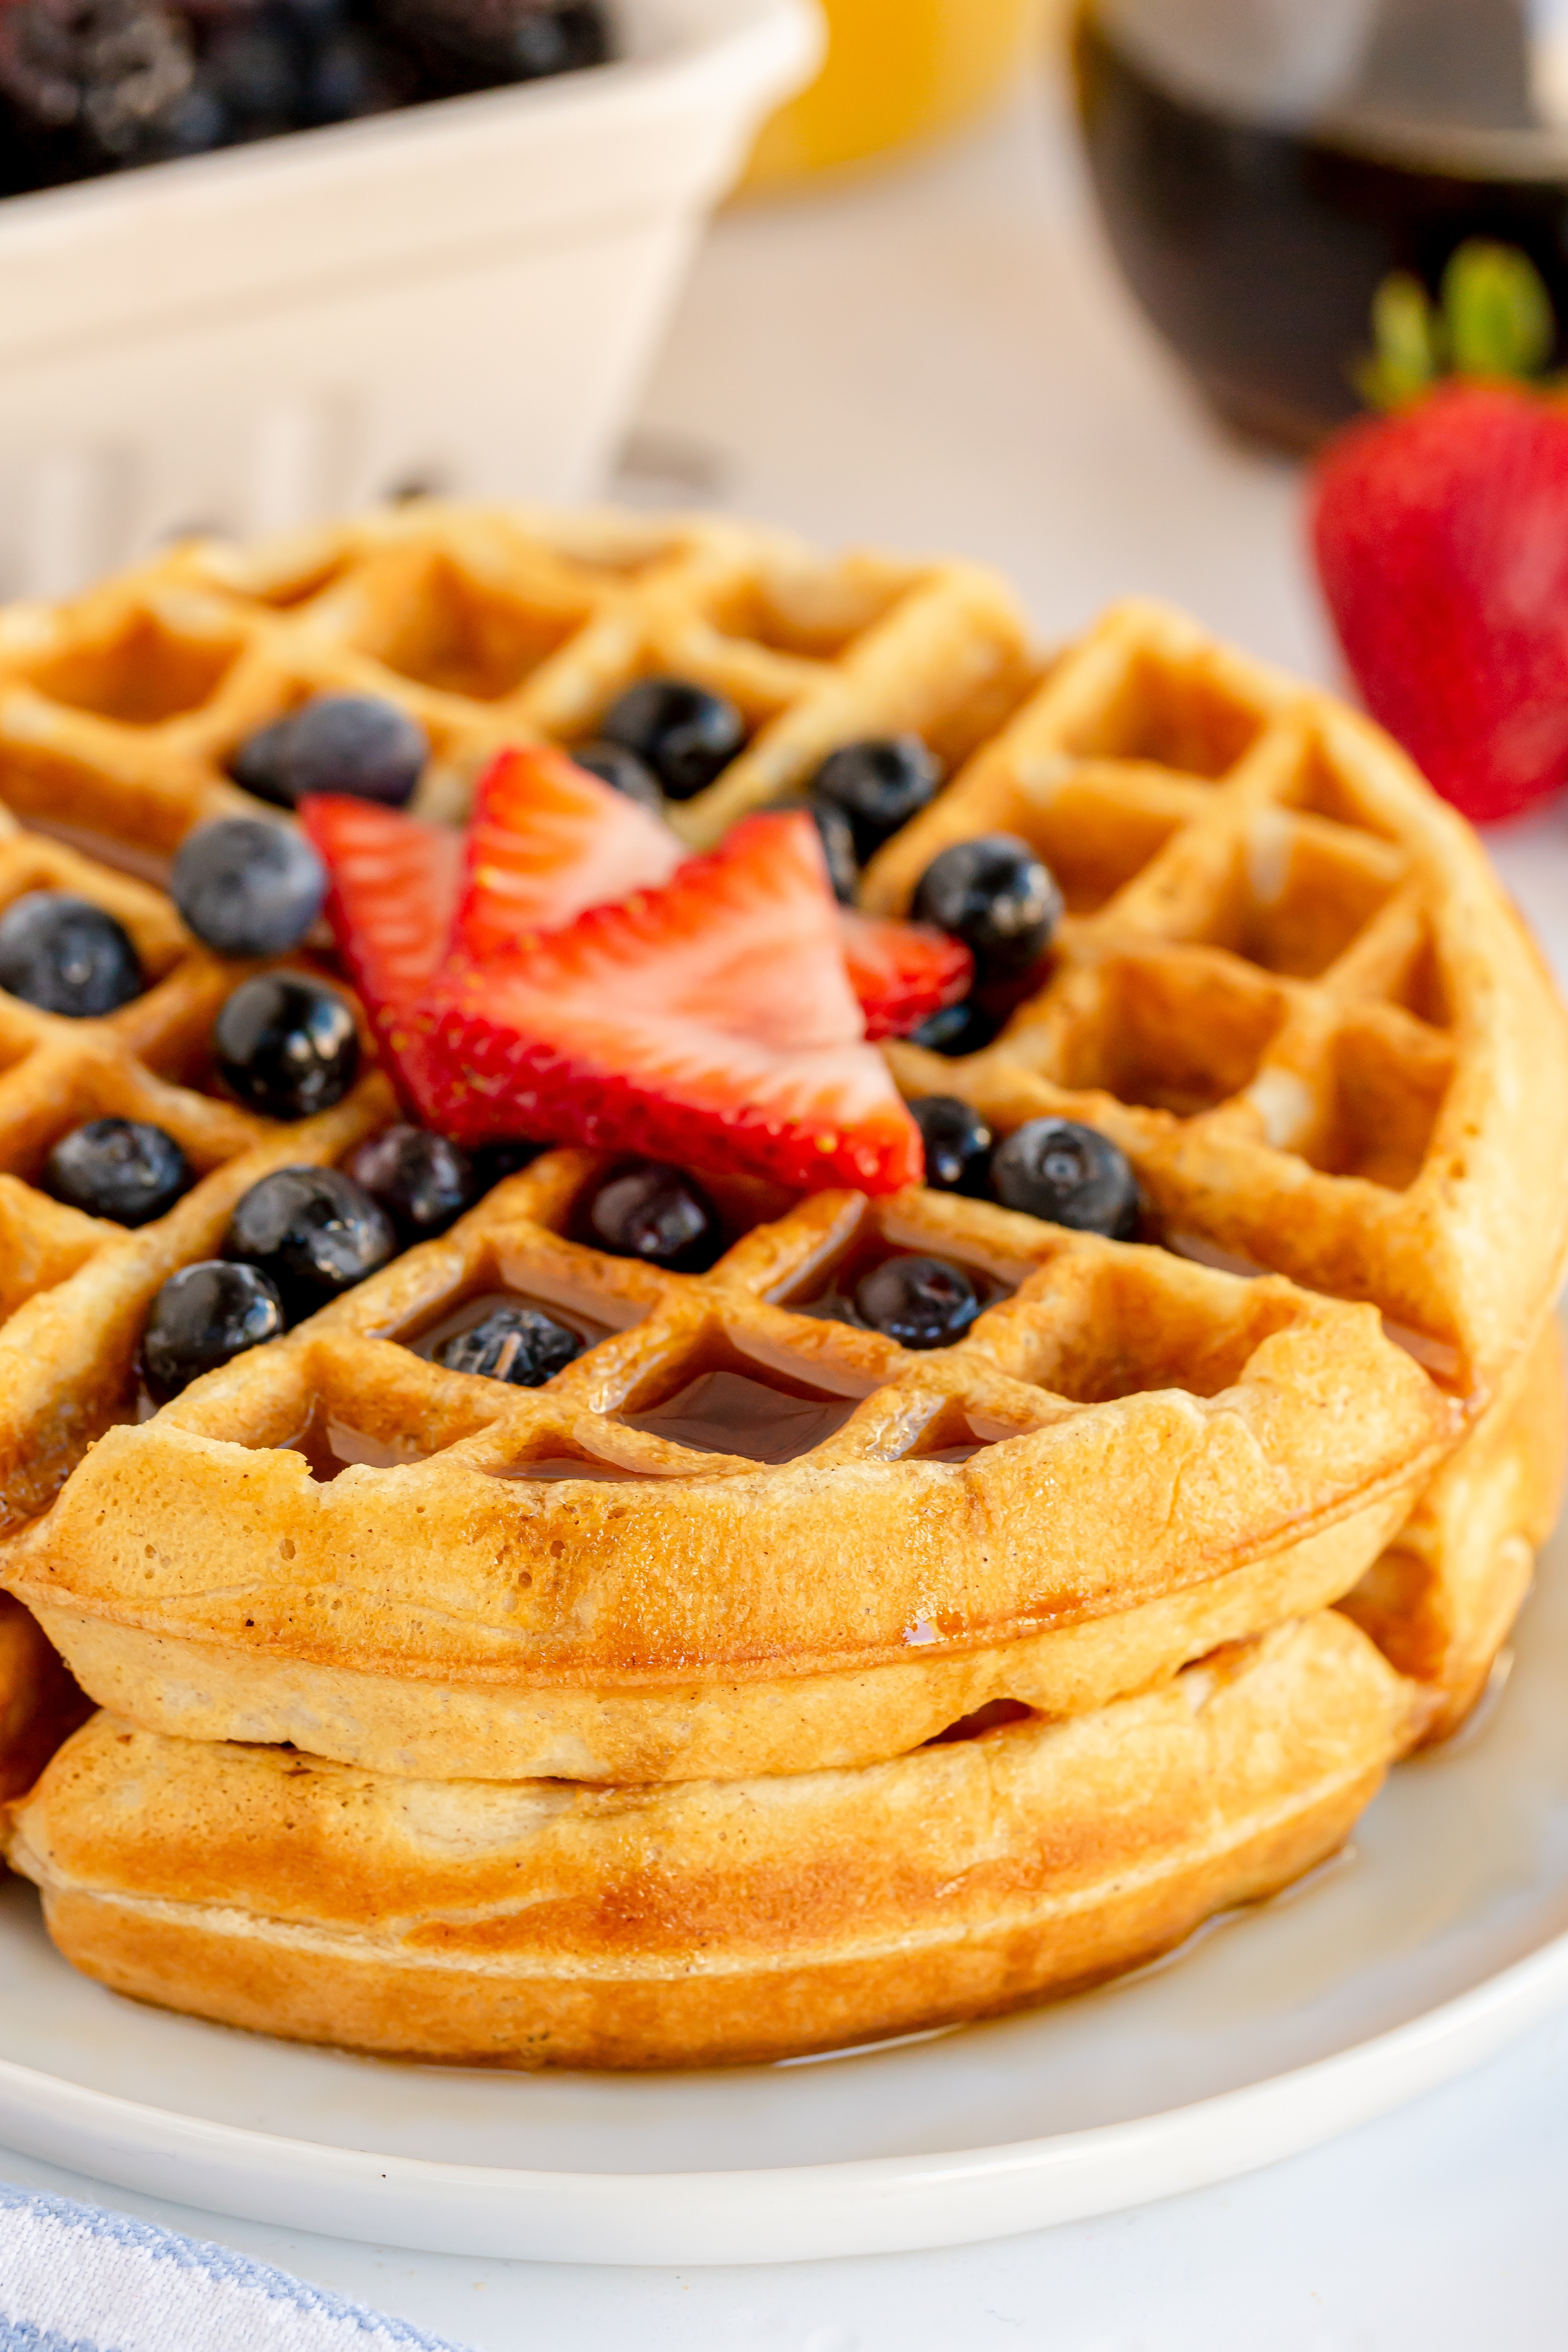 homemade waffle with berries and syrup